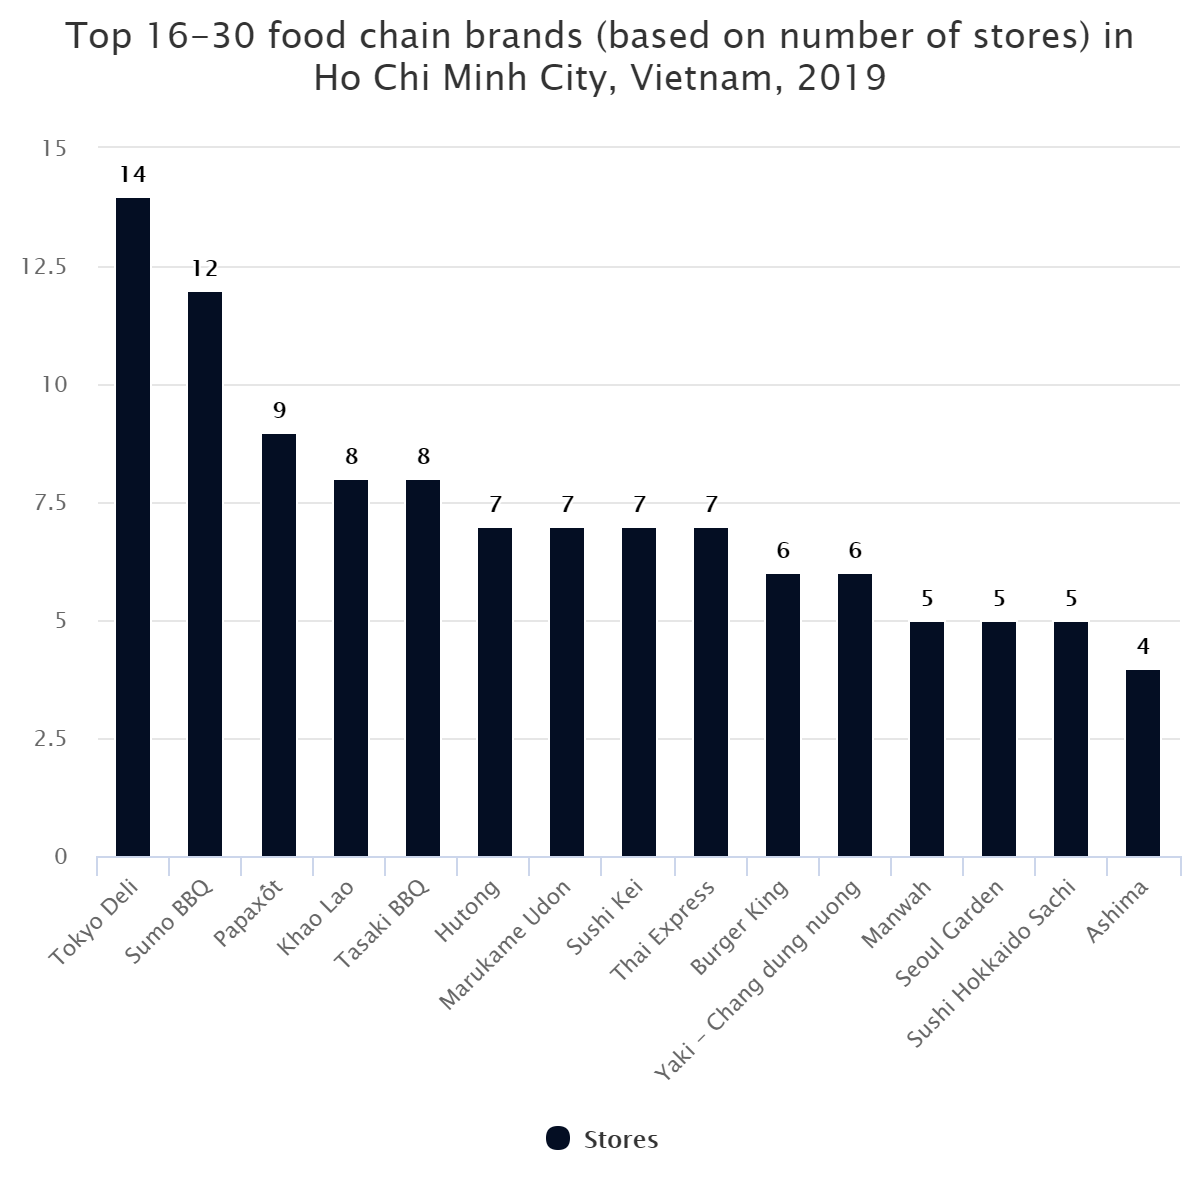 Top 16-30 food chain brands (based on number of stores) in Ho Chi Minh City, Vietnam, 2019